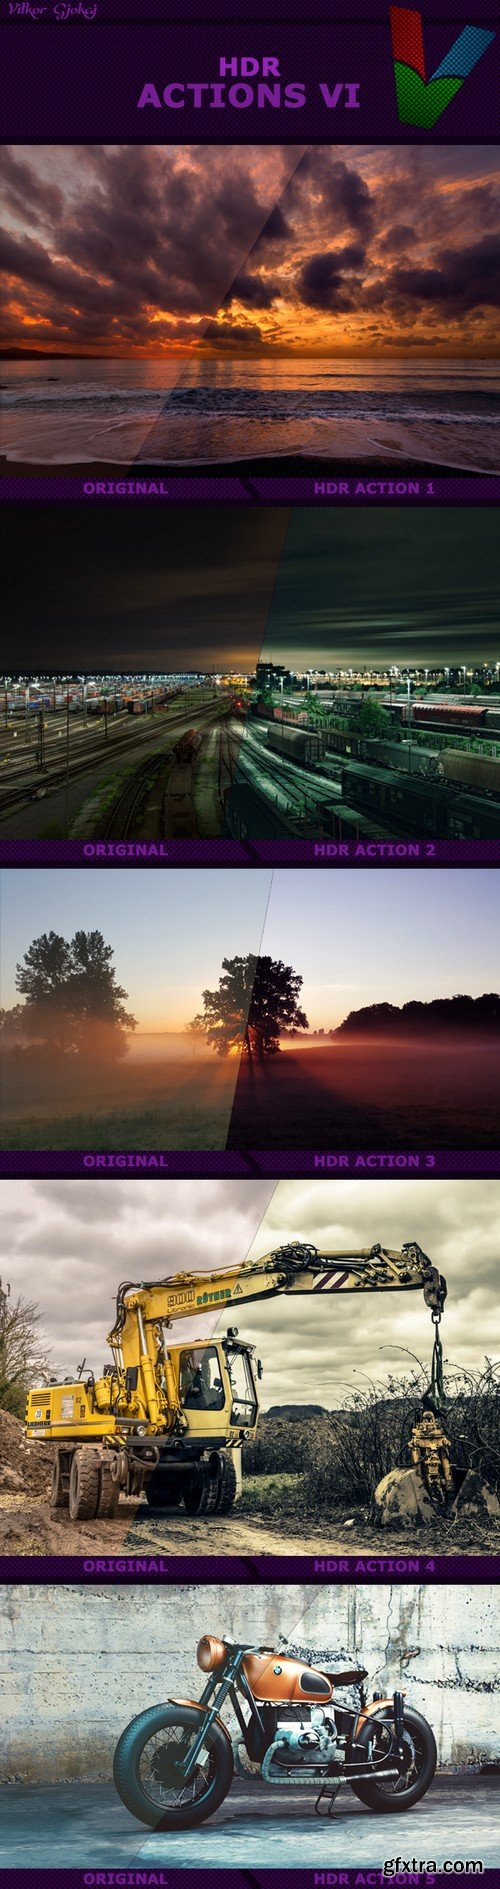 Graphicriver - HDR Actions VI 16836406